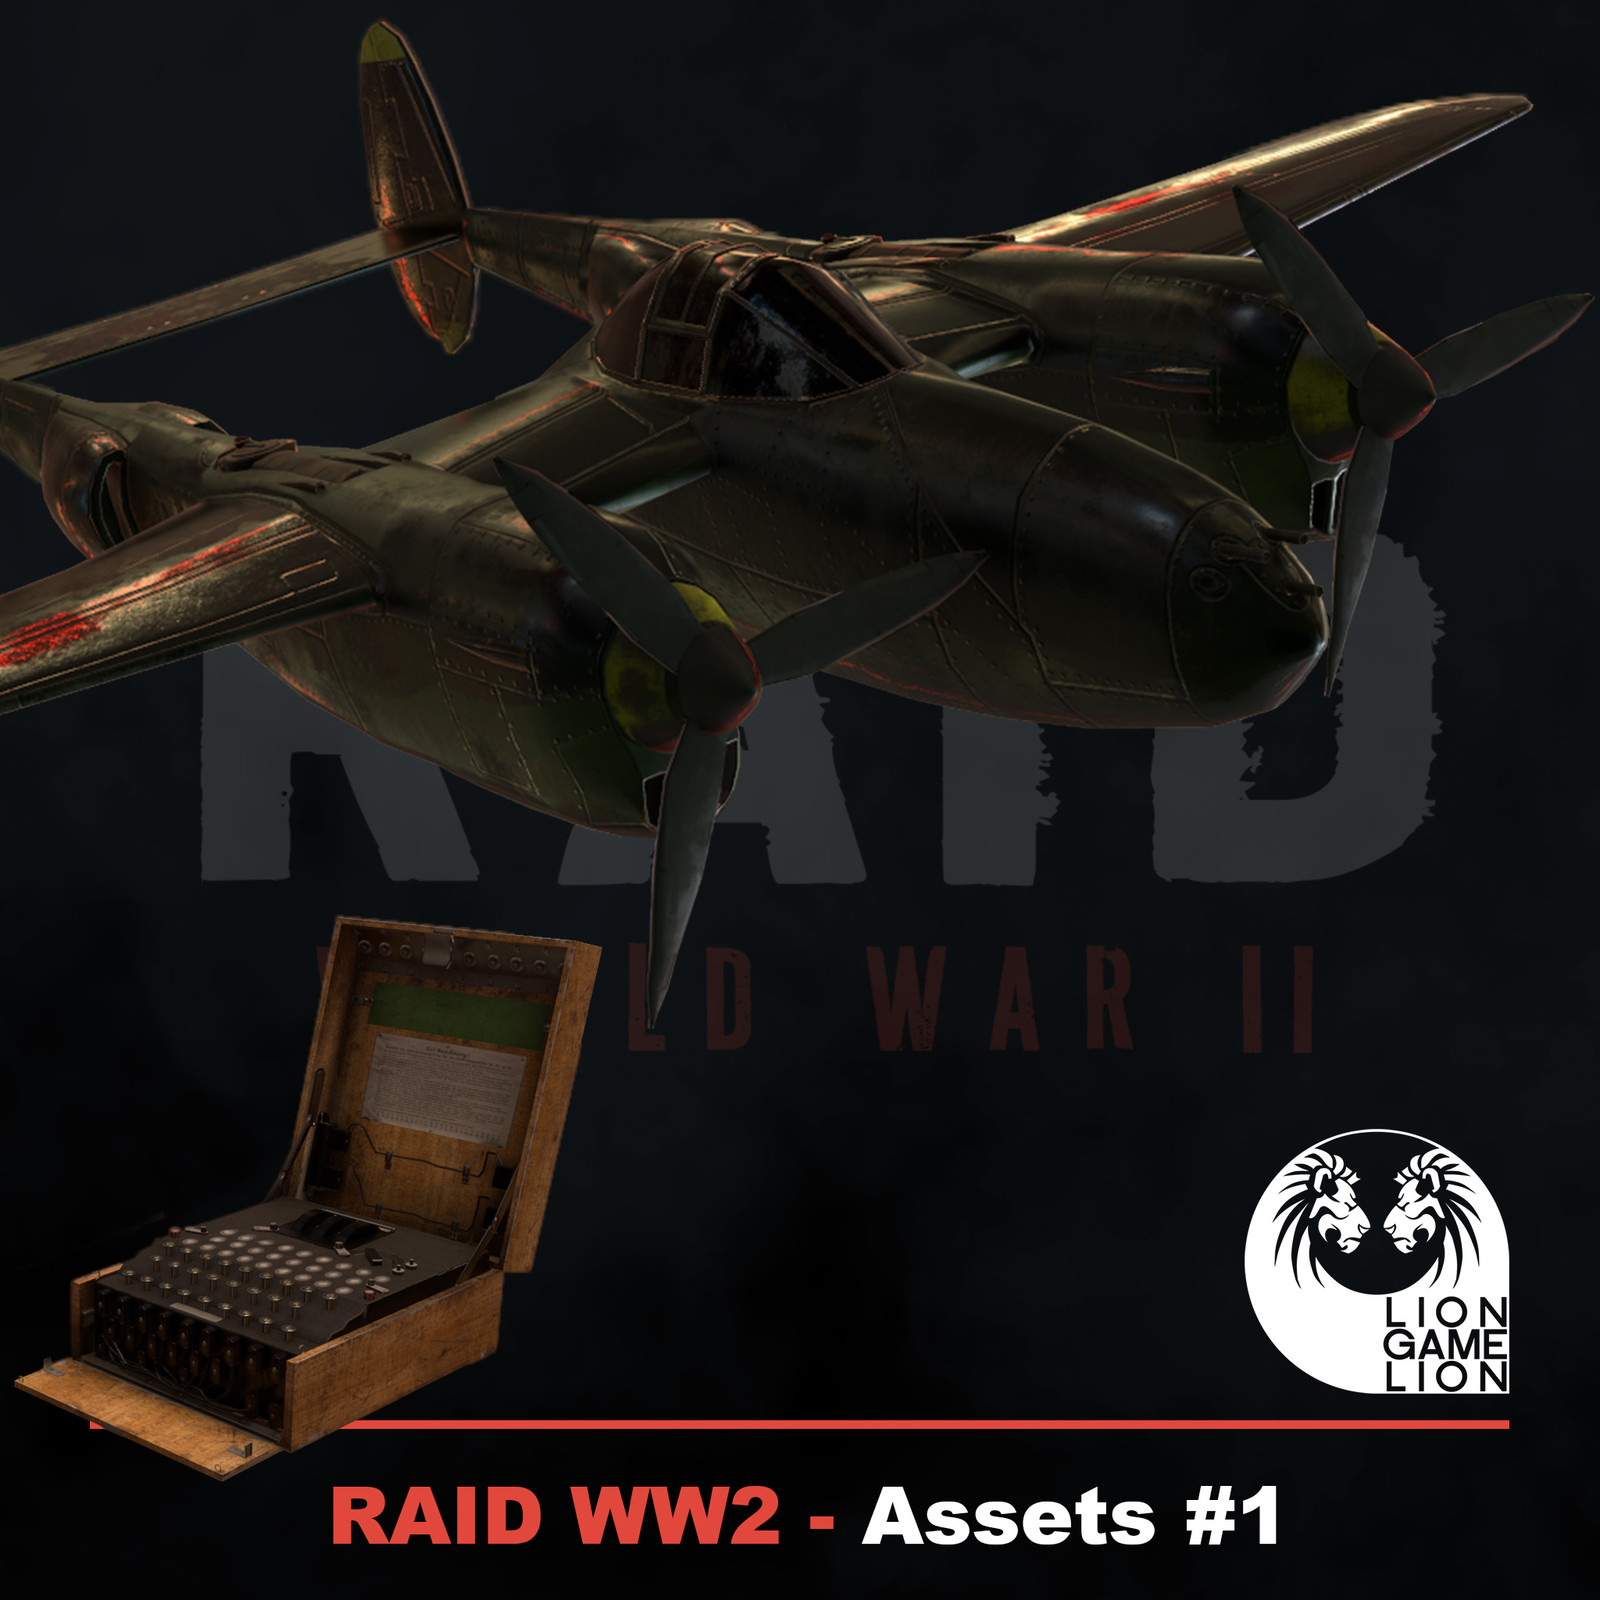 RAID World War II - Game Assets #1